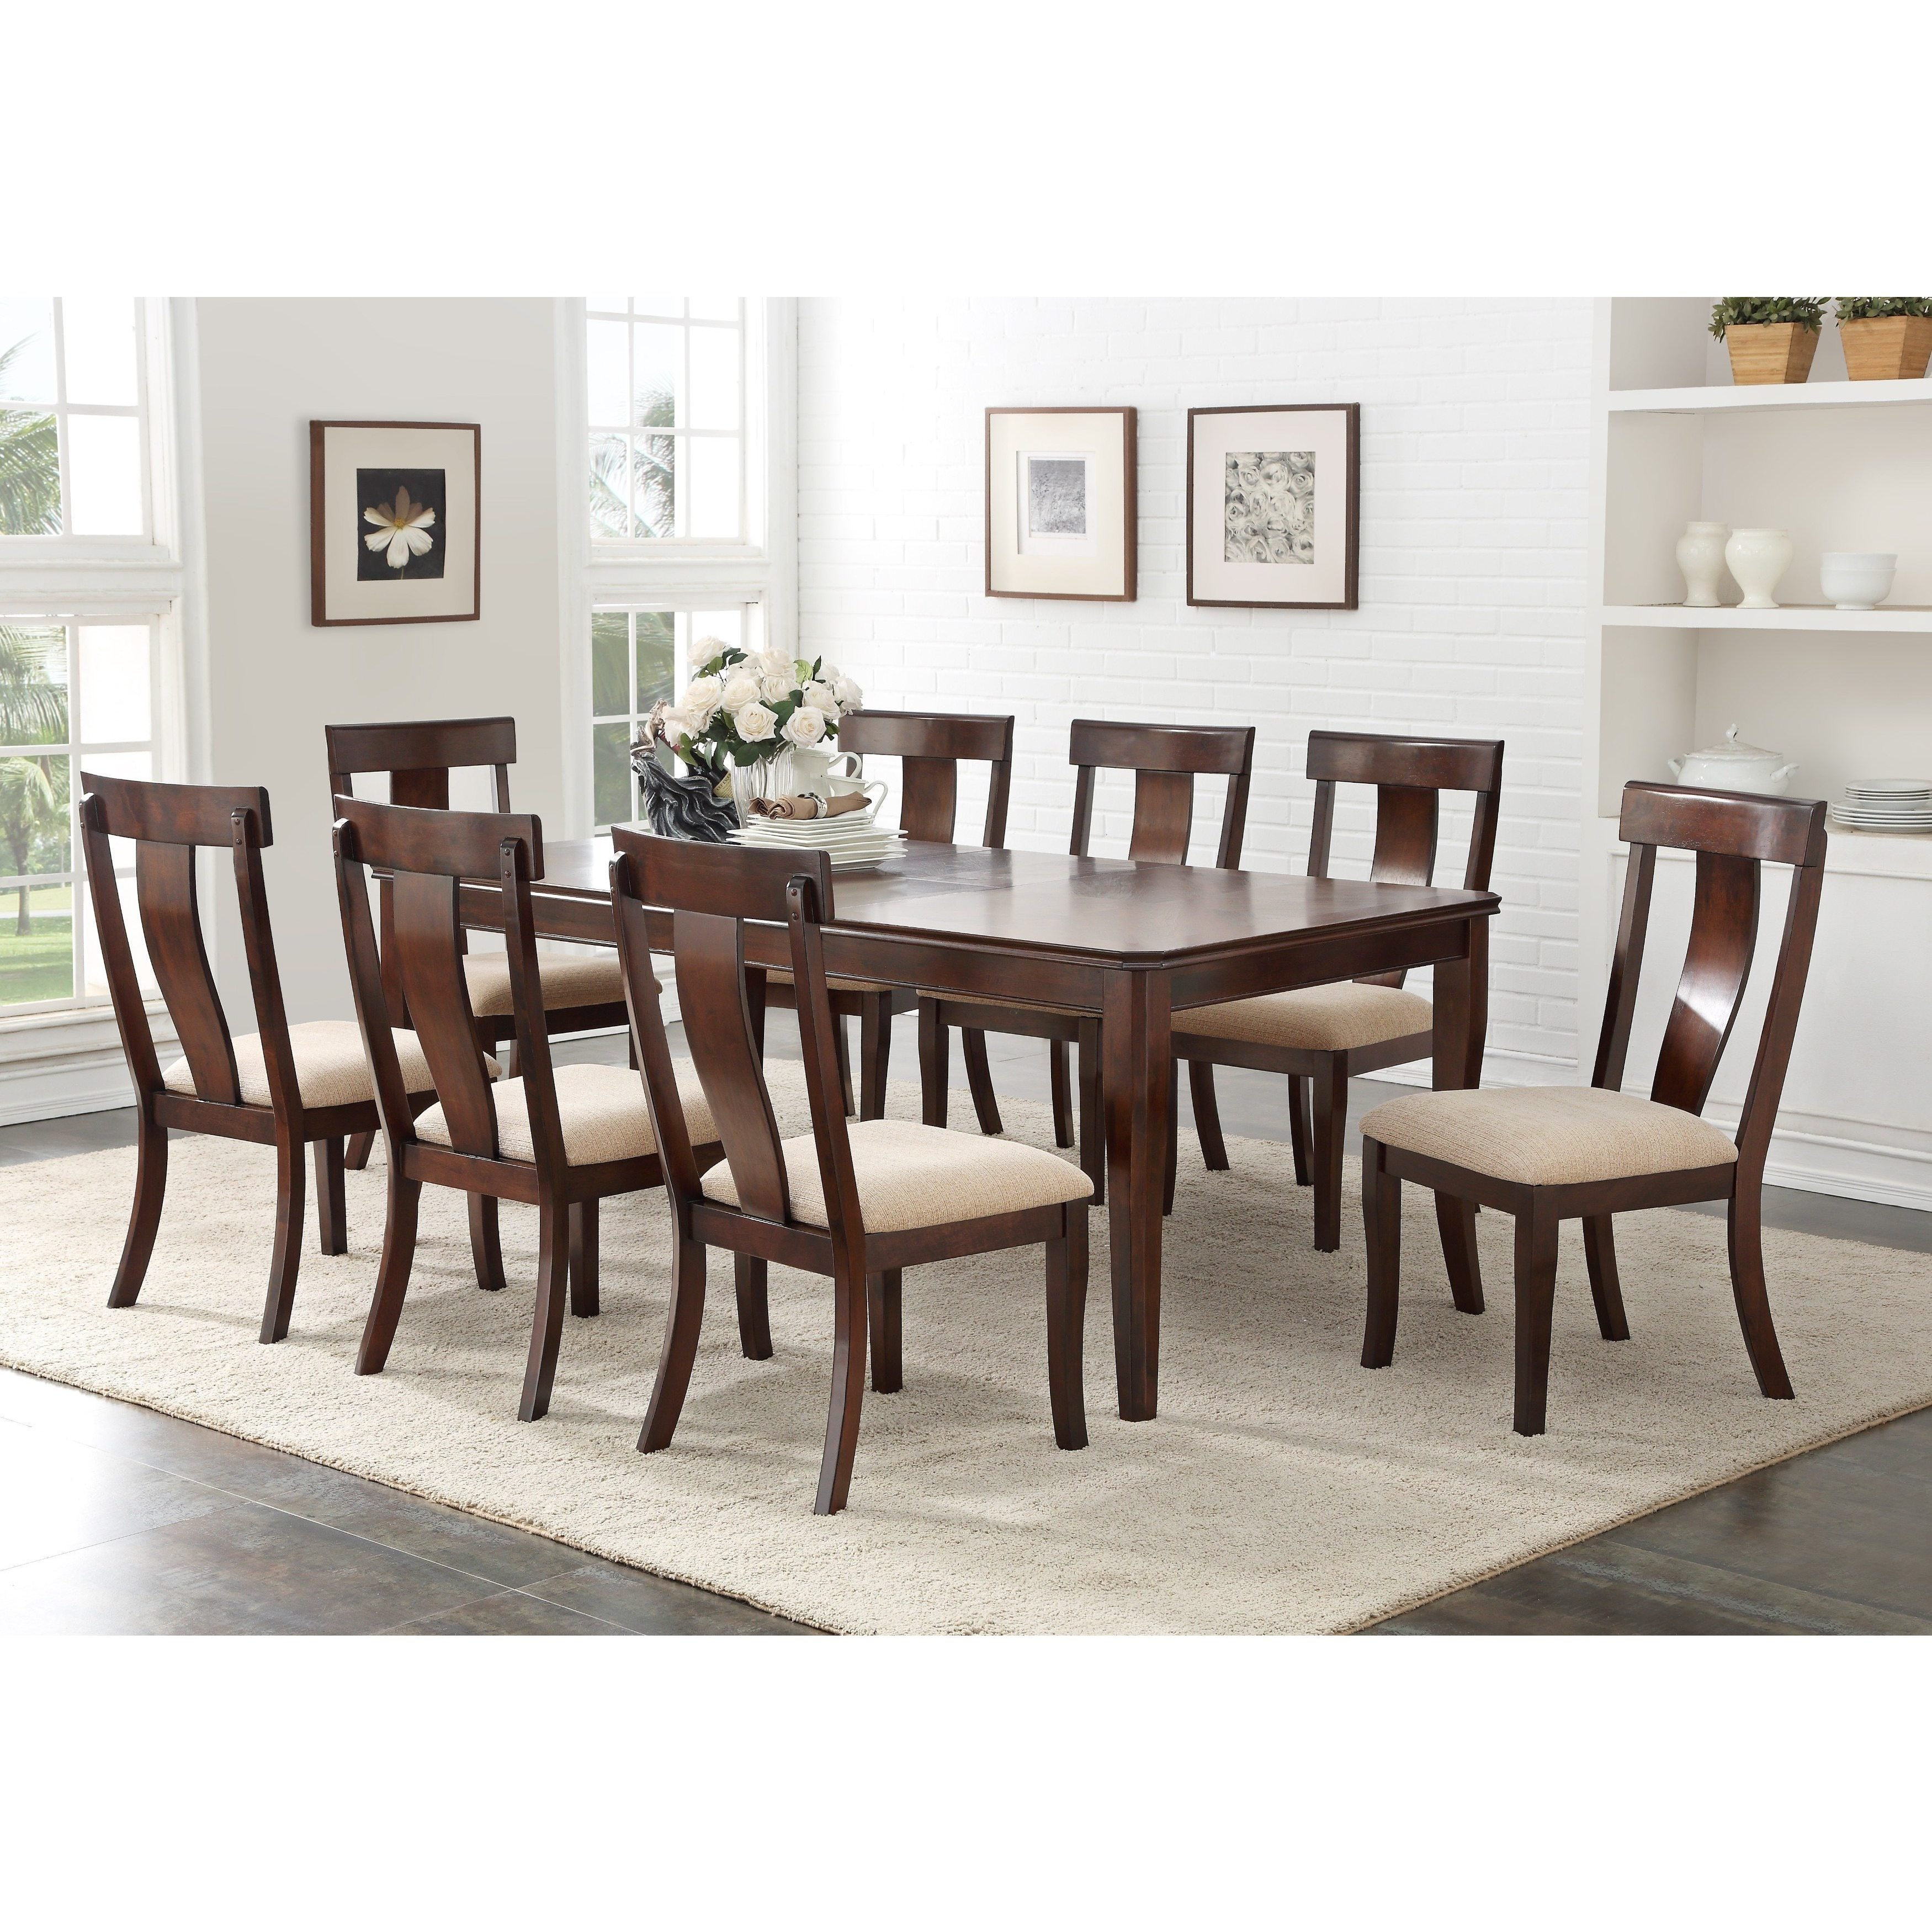 Cherry Wood Contemporary Rectangular Dinette Dining Room Table With 18 Inch Leaf Extension